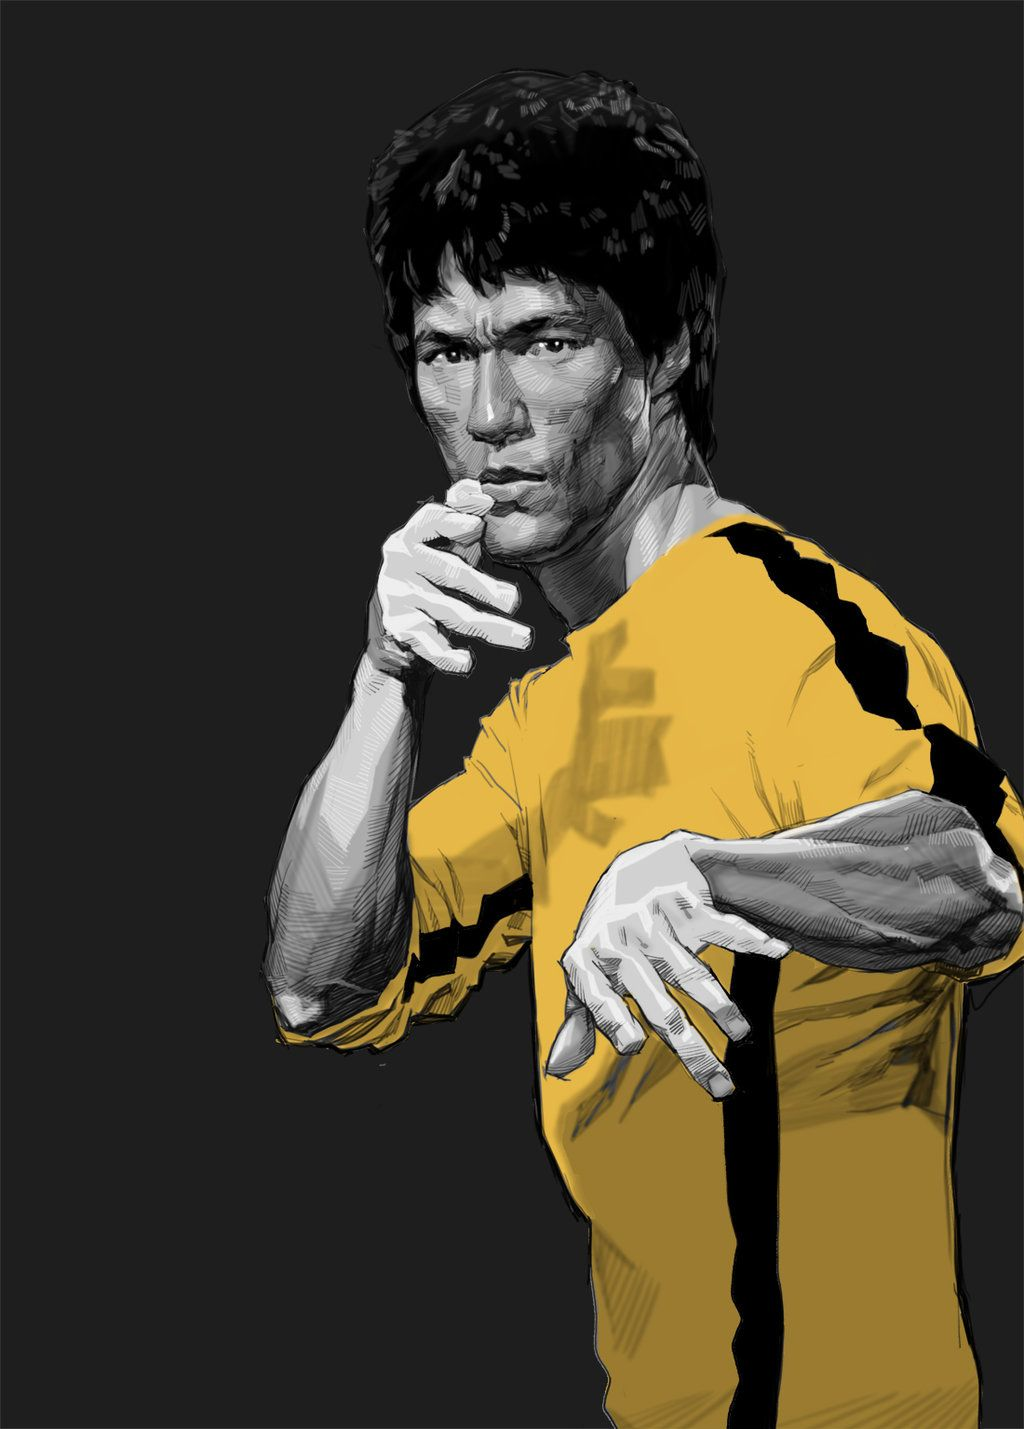 Bruce Lee 16 By Kse332 Deviantart Com On Deviantart Bruce Lee